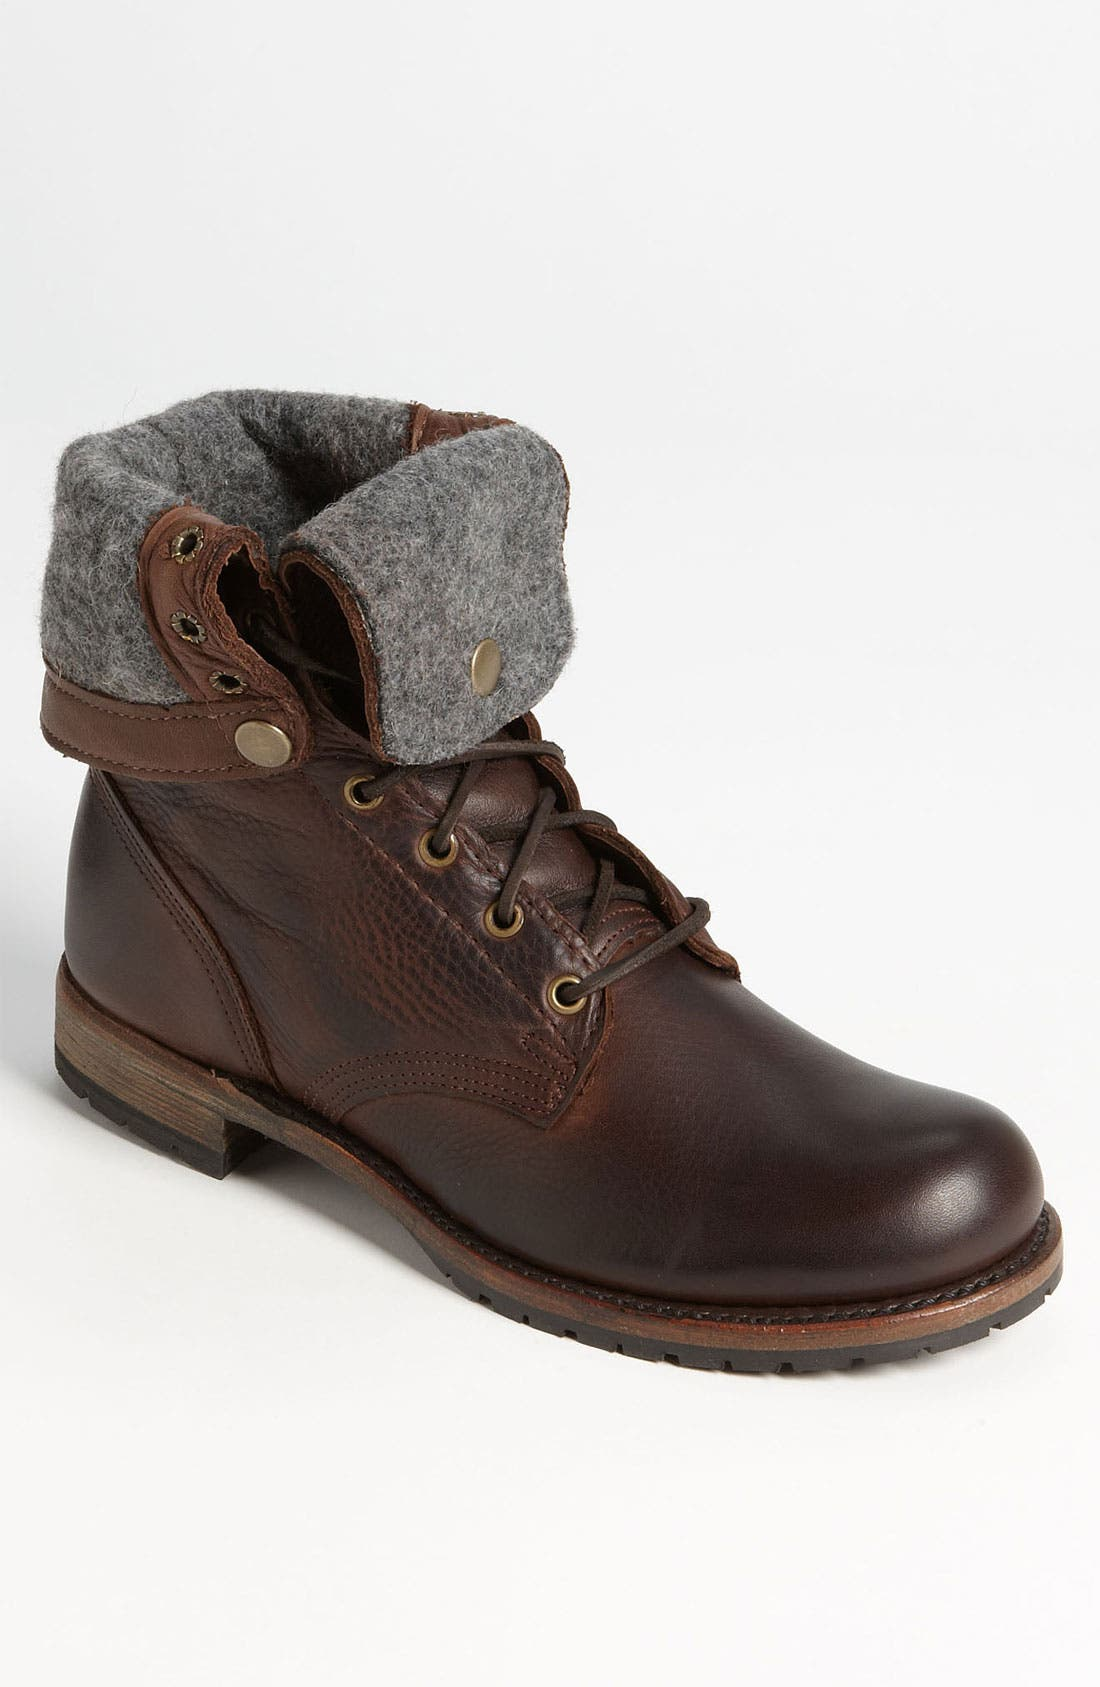 Alternate Image 1 Selected - Vintage Shoe Company 'Ian' Boot